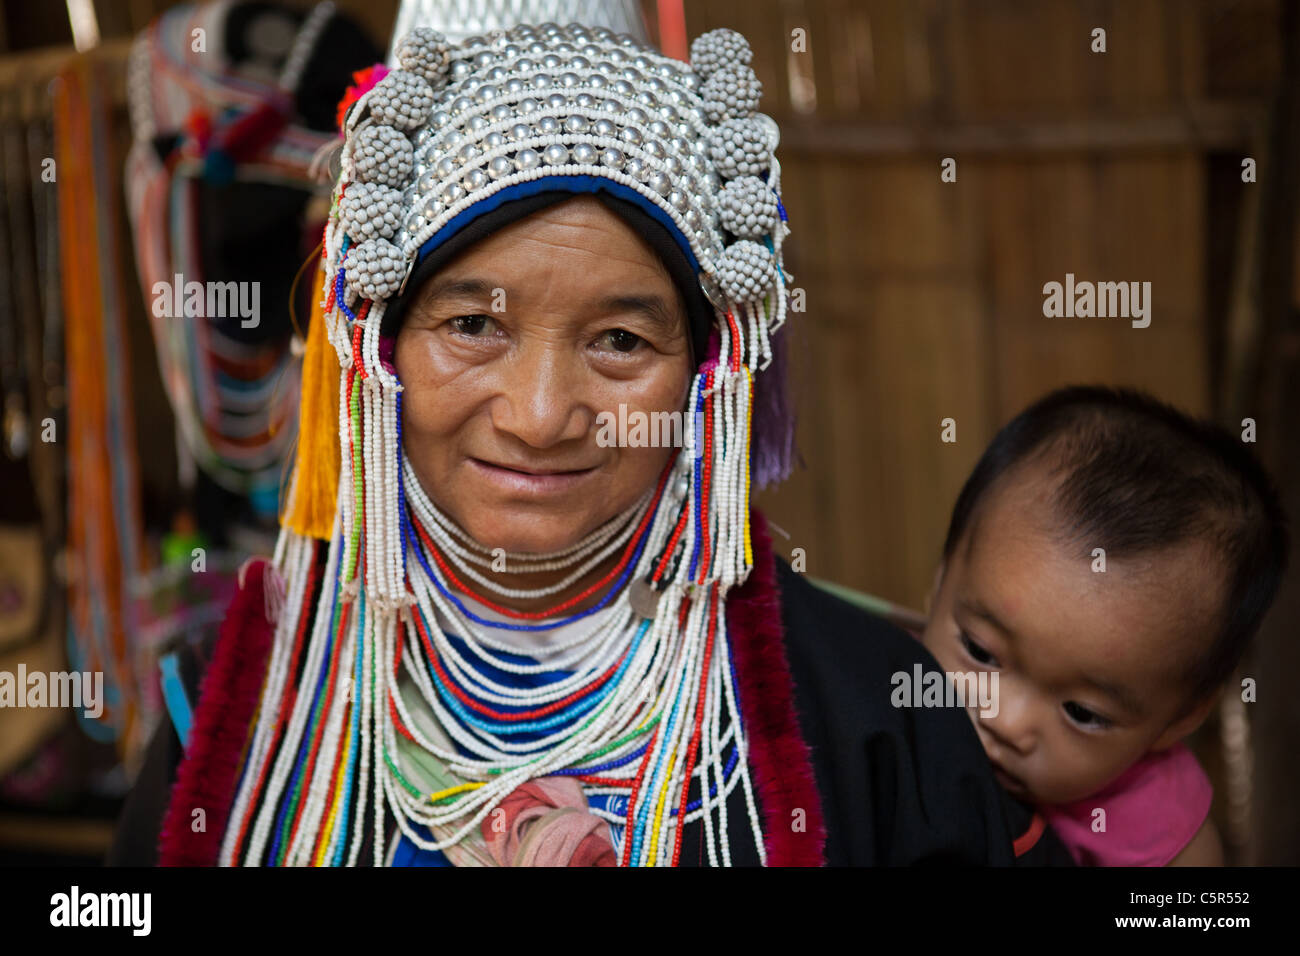 The Akha are a hill tribe who live in small villages in the mountains of China, Laos, Myanmar and Thailand. - Stock Image